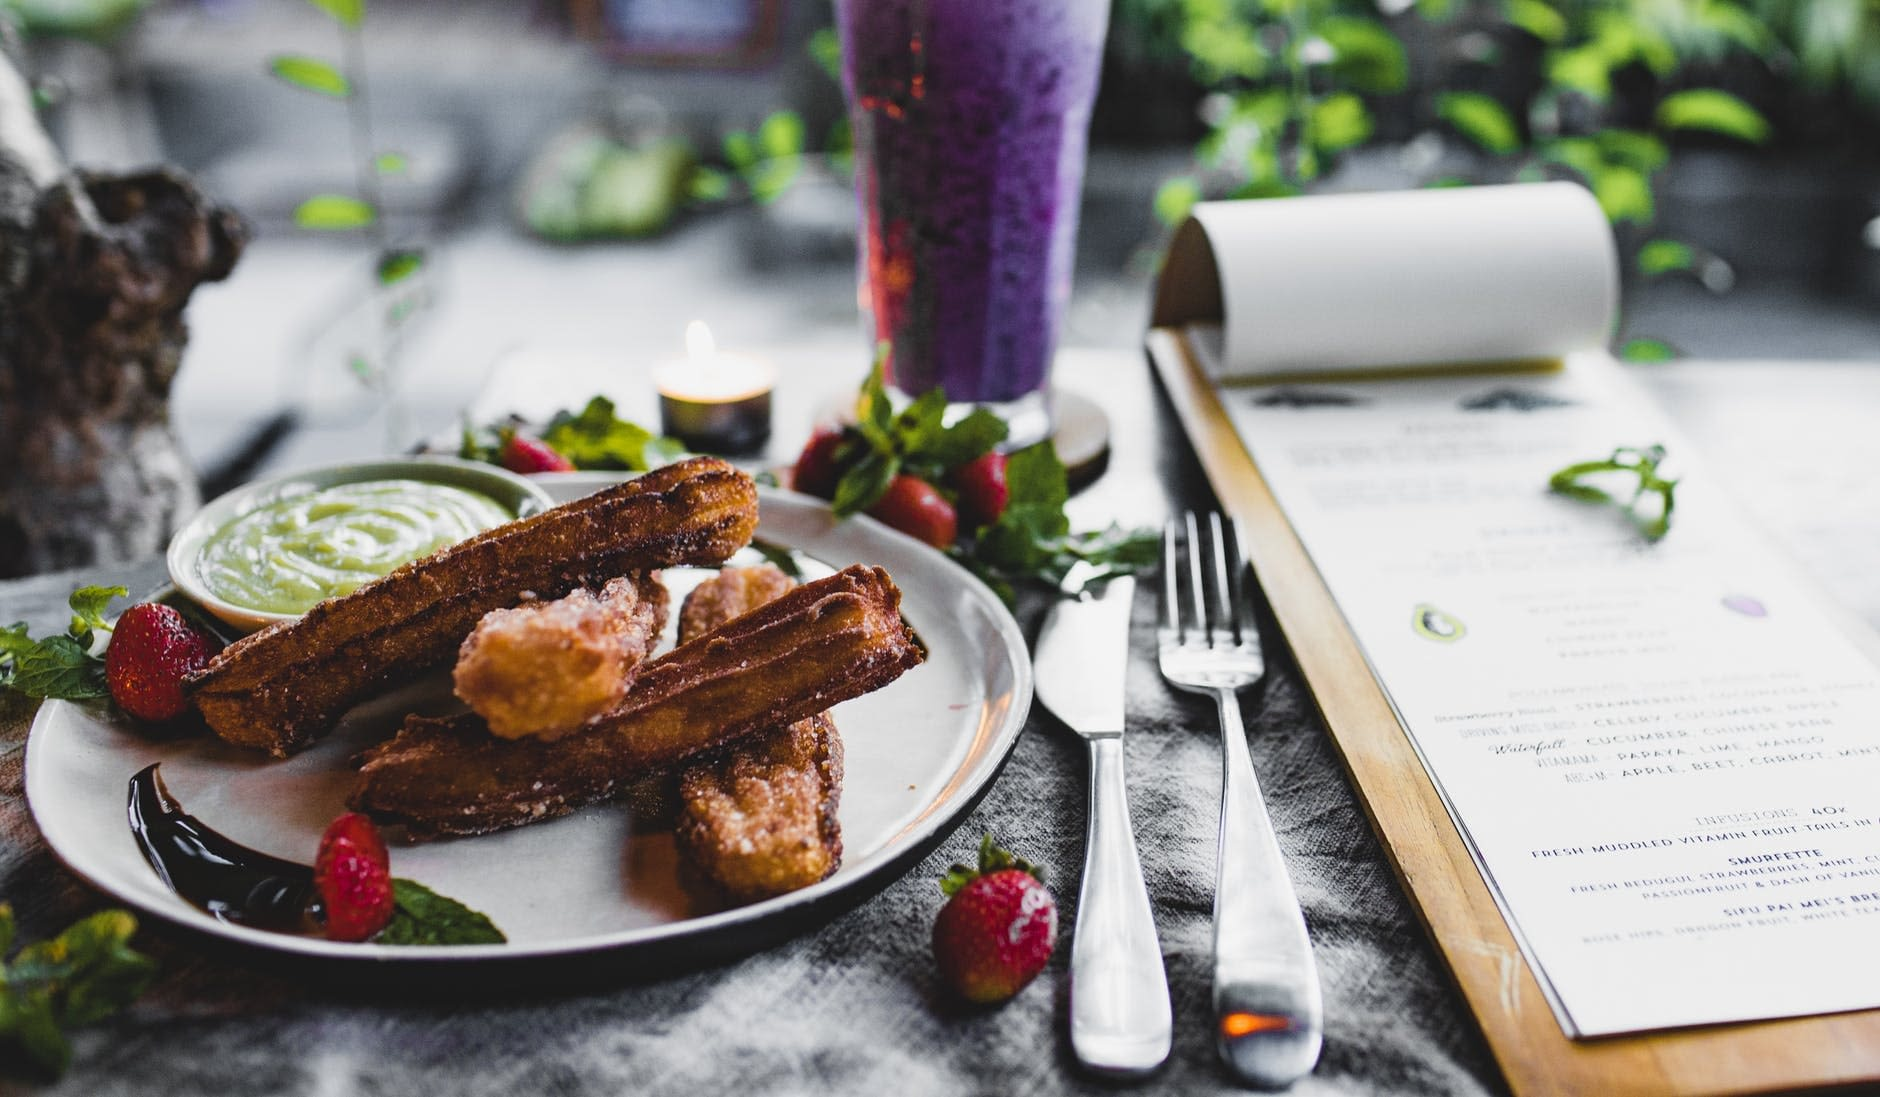 plate of delicious churros with sauce served on table with smoothie